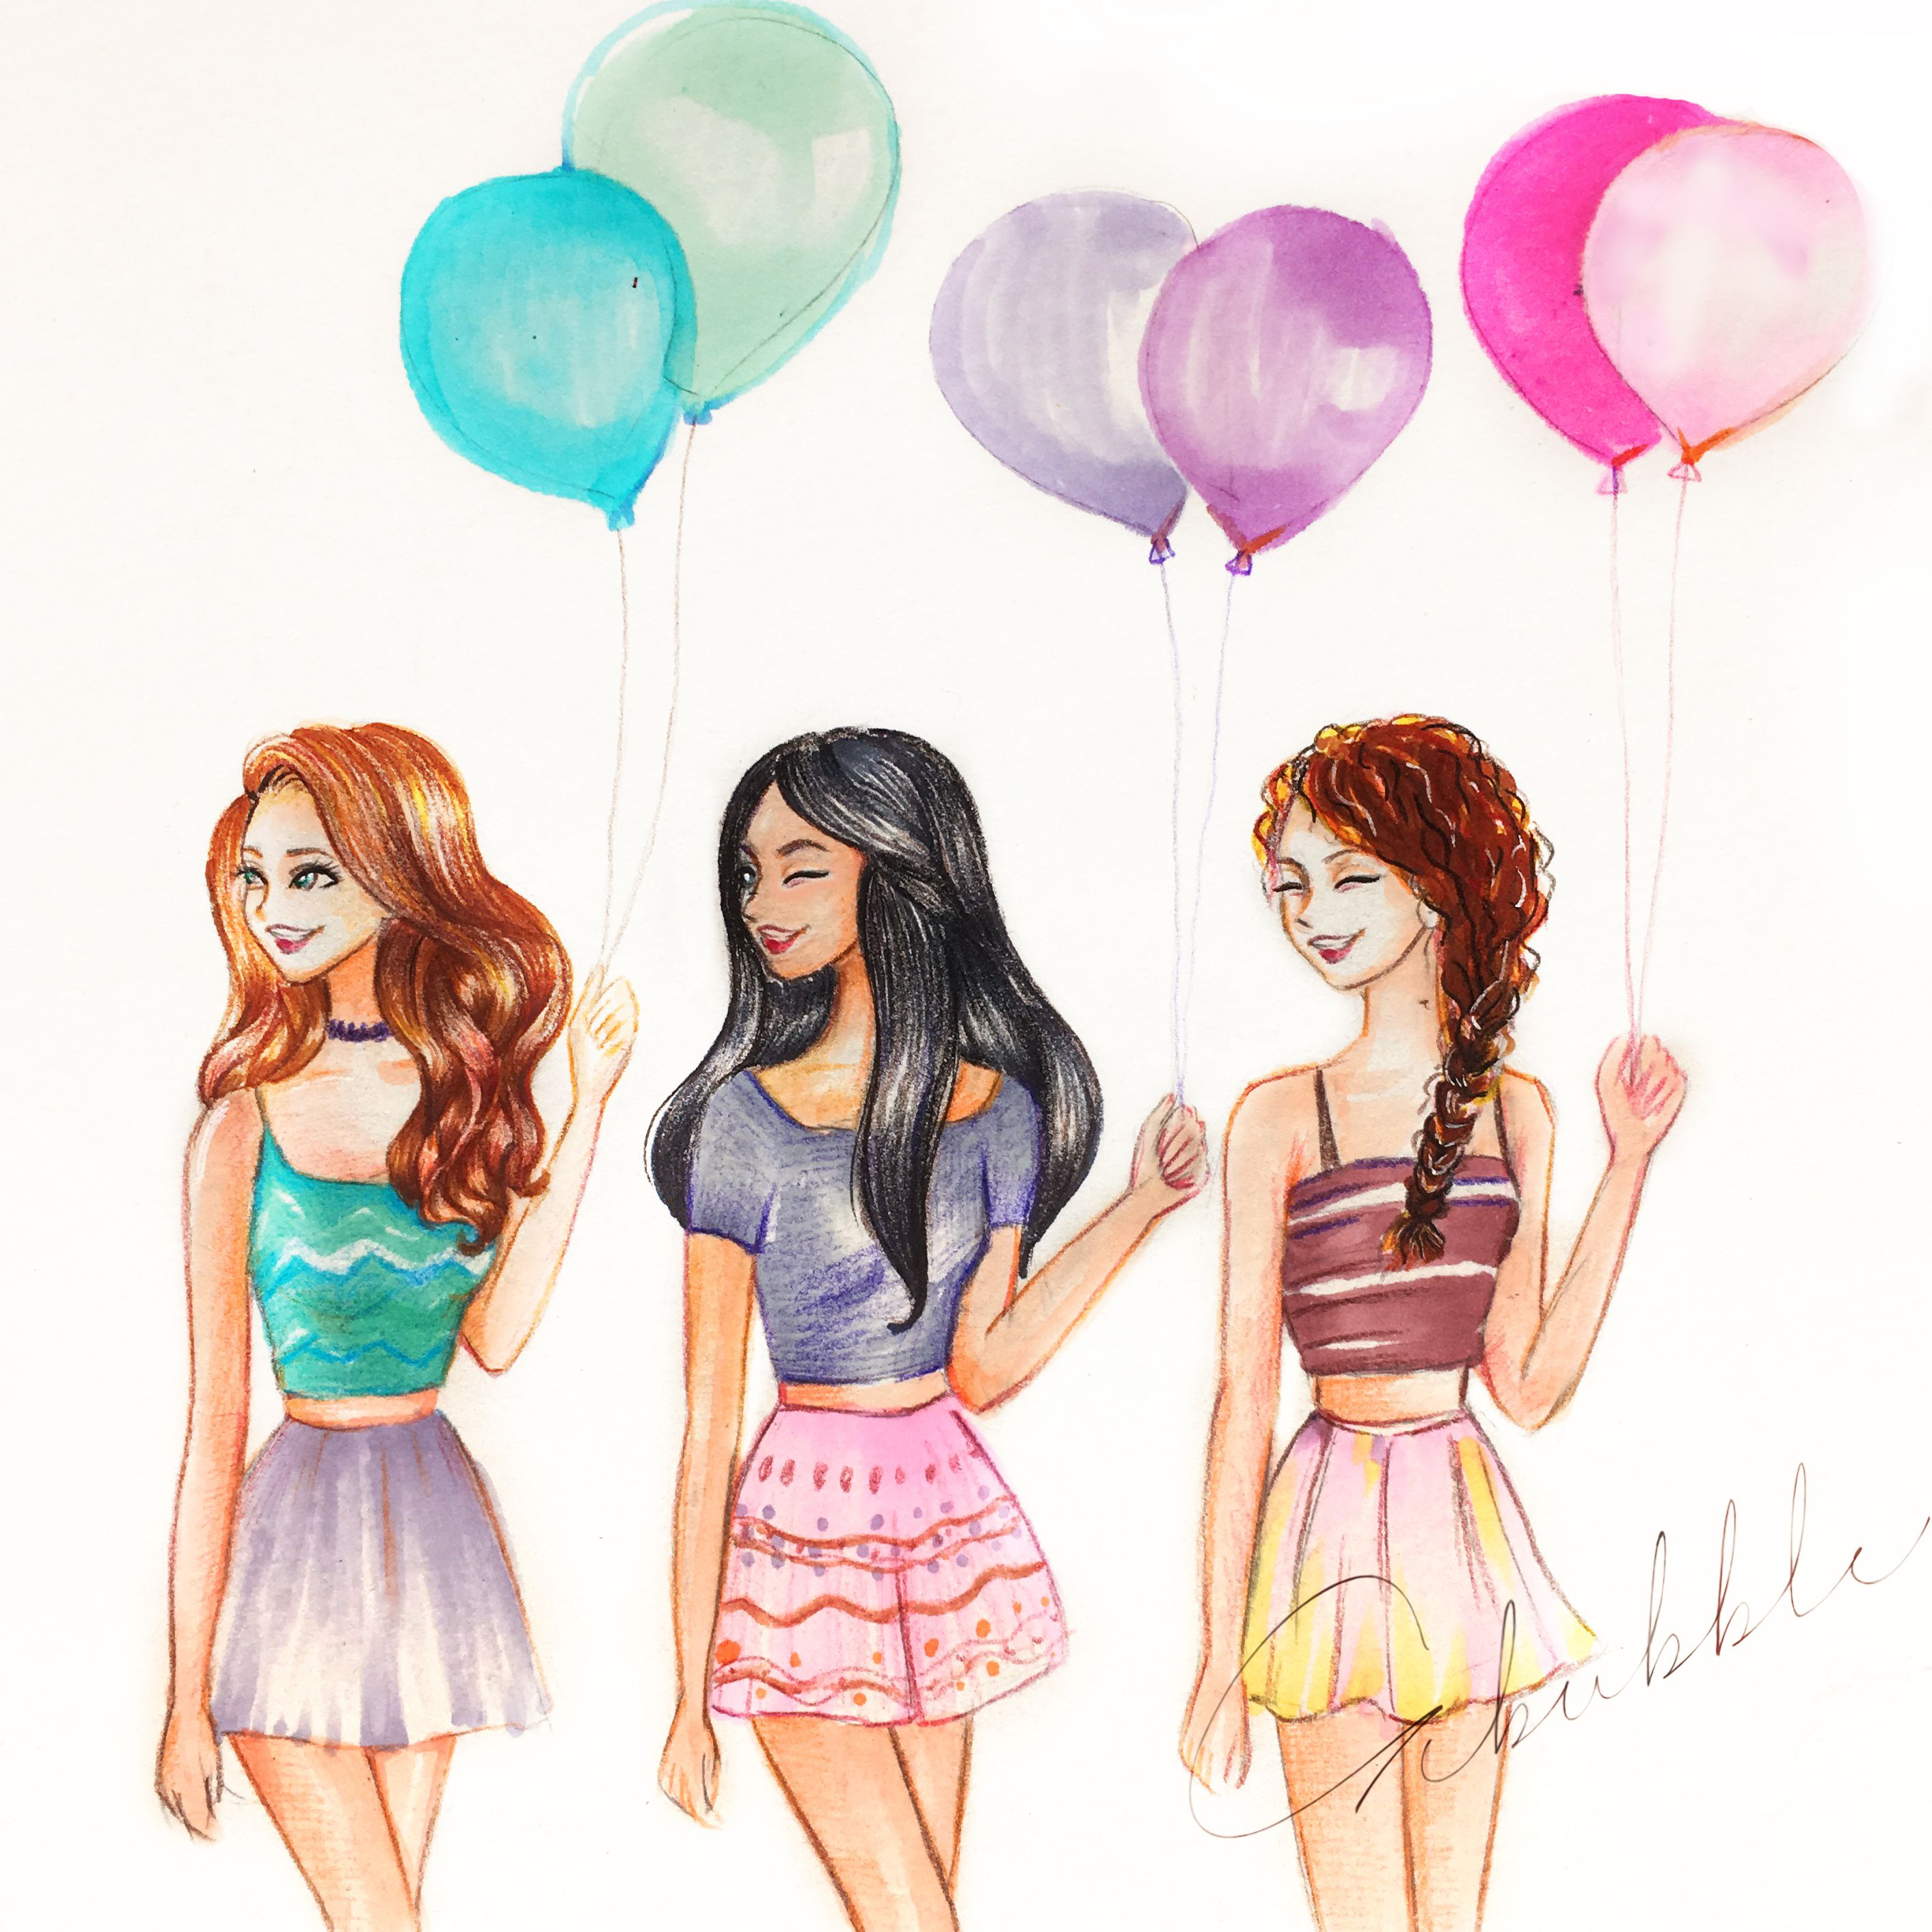 2826x2826 Balloon Cfl El Mejor Drawings, Bff And Drawing Ideas